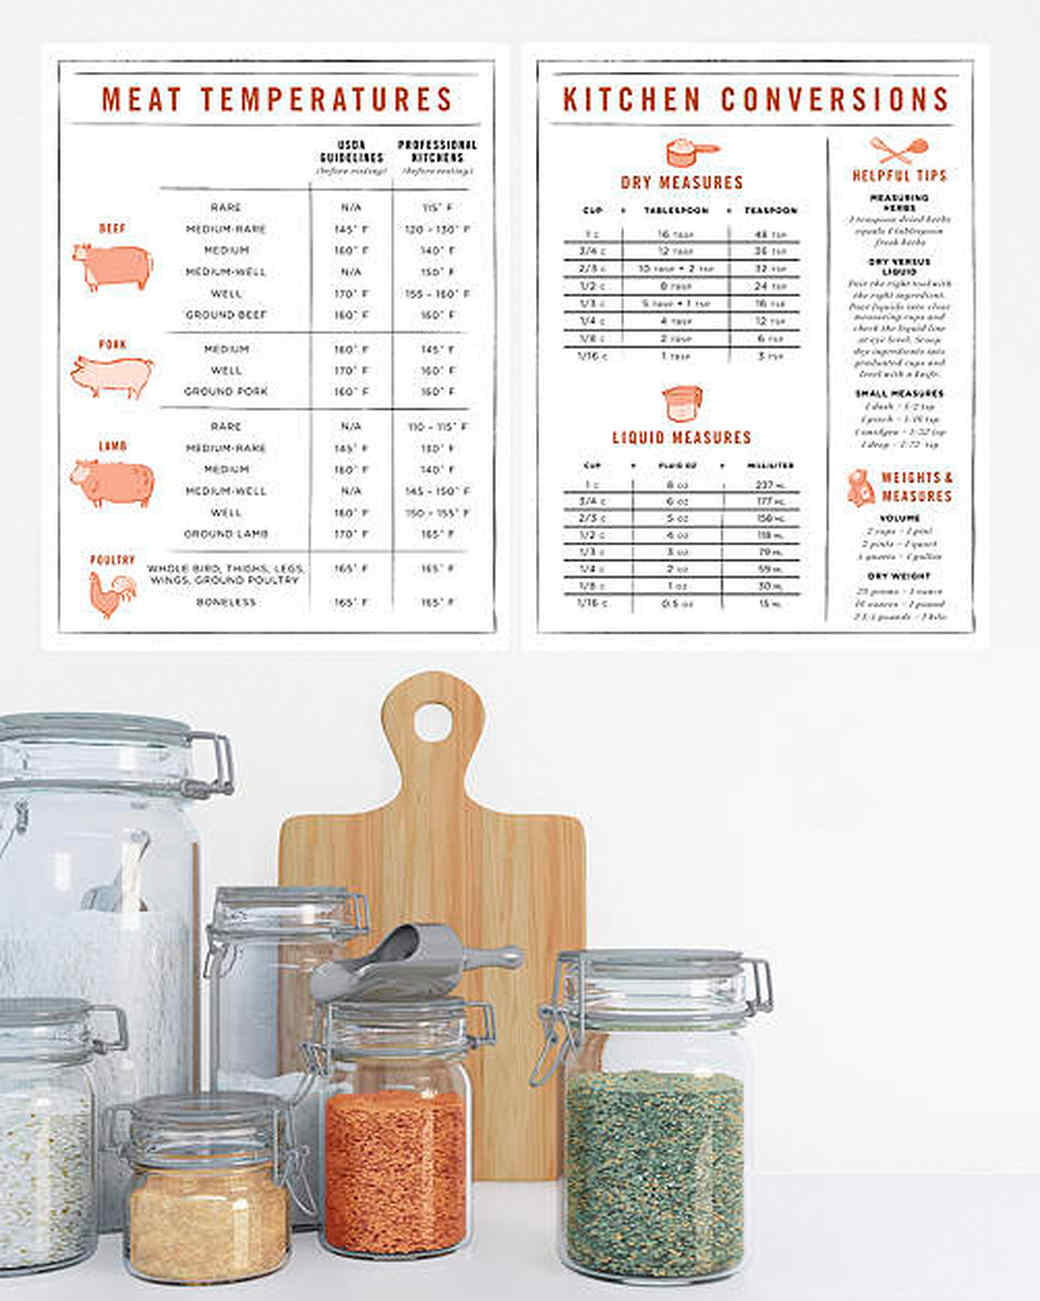 fathead-meat-temperatures-and-kitchen-conversions.jpg